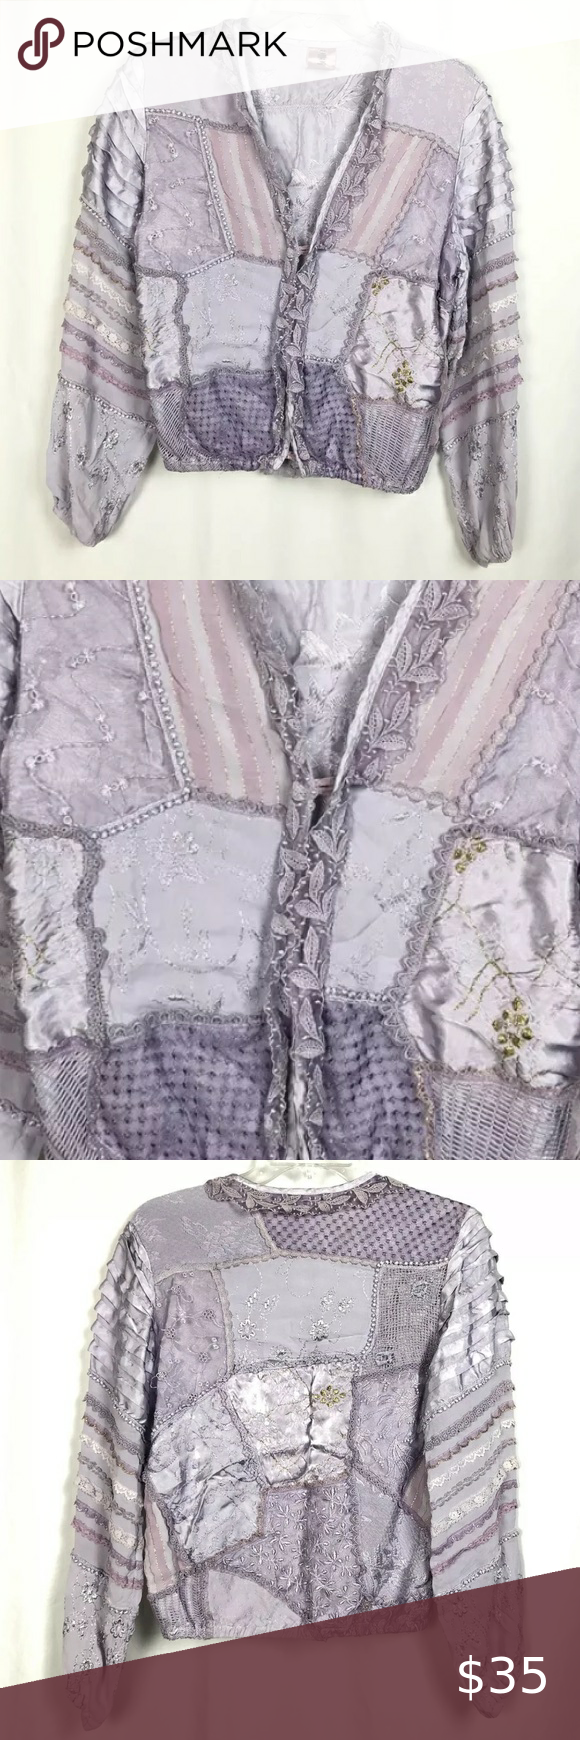 Vintage 80s Lace Ruffled Lurex Jacket Victorian Vintage 1980s Lace , Mesh, Ruffled, Metallic Lurex threading, Jacket top  Fancy Victorian  Made in ITALY  Lavender purple with White , Gold & Silver accents Elastic cuffs and waistband tag size S 3 Loop & button closures in the front 100% Viscose with trimming made from Poly & Rayon measurements are approximate pit to pit across the back 20